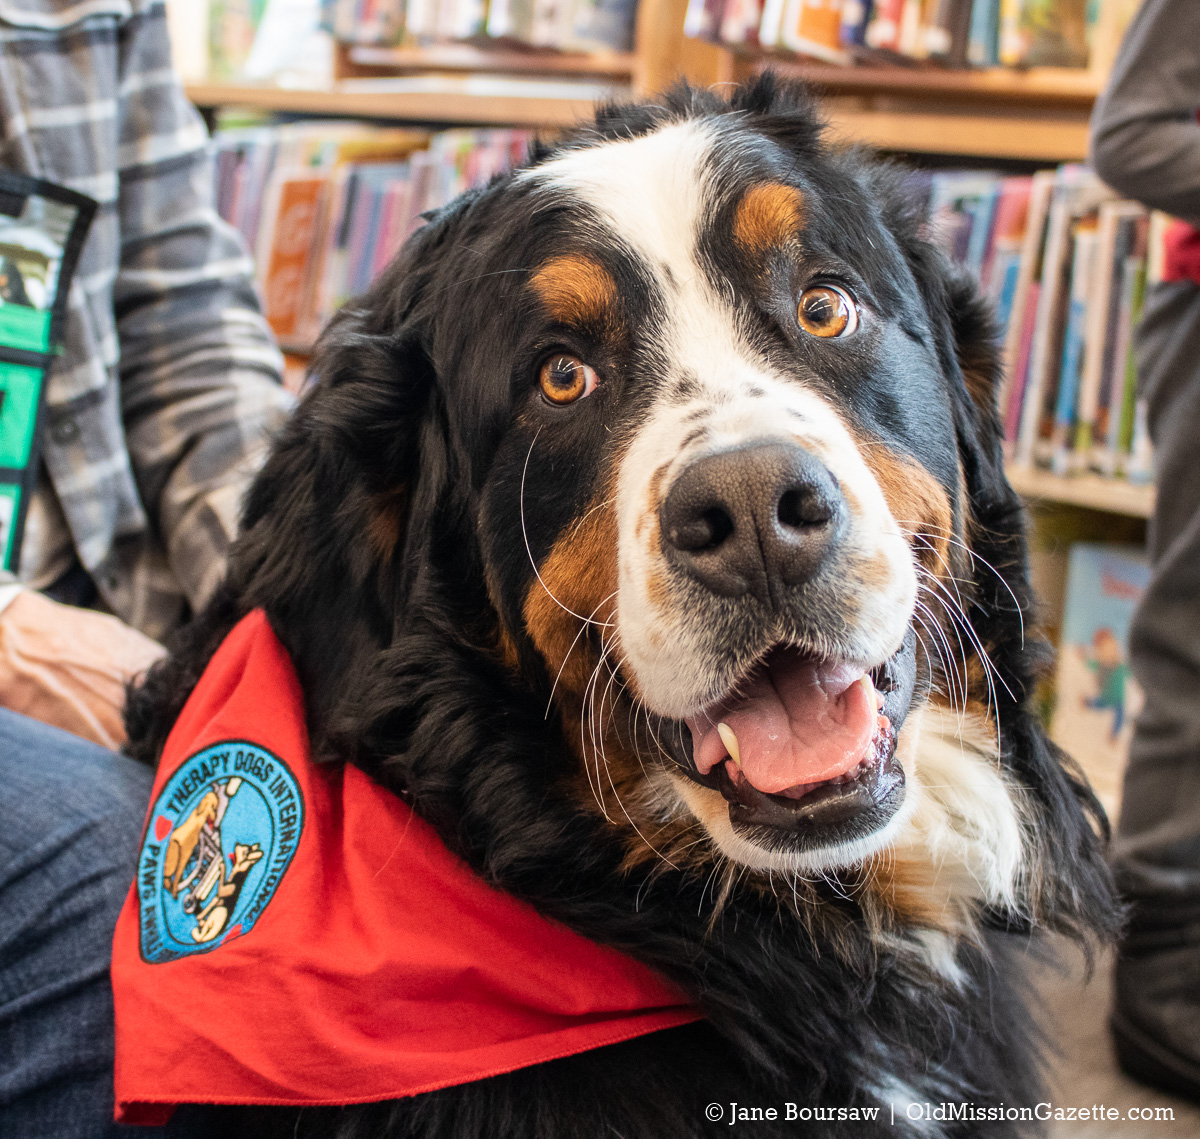 Coco, the Reading Therapy Dog at Peninsula Community Library | Jane Boursaw Photo